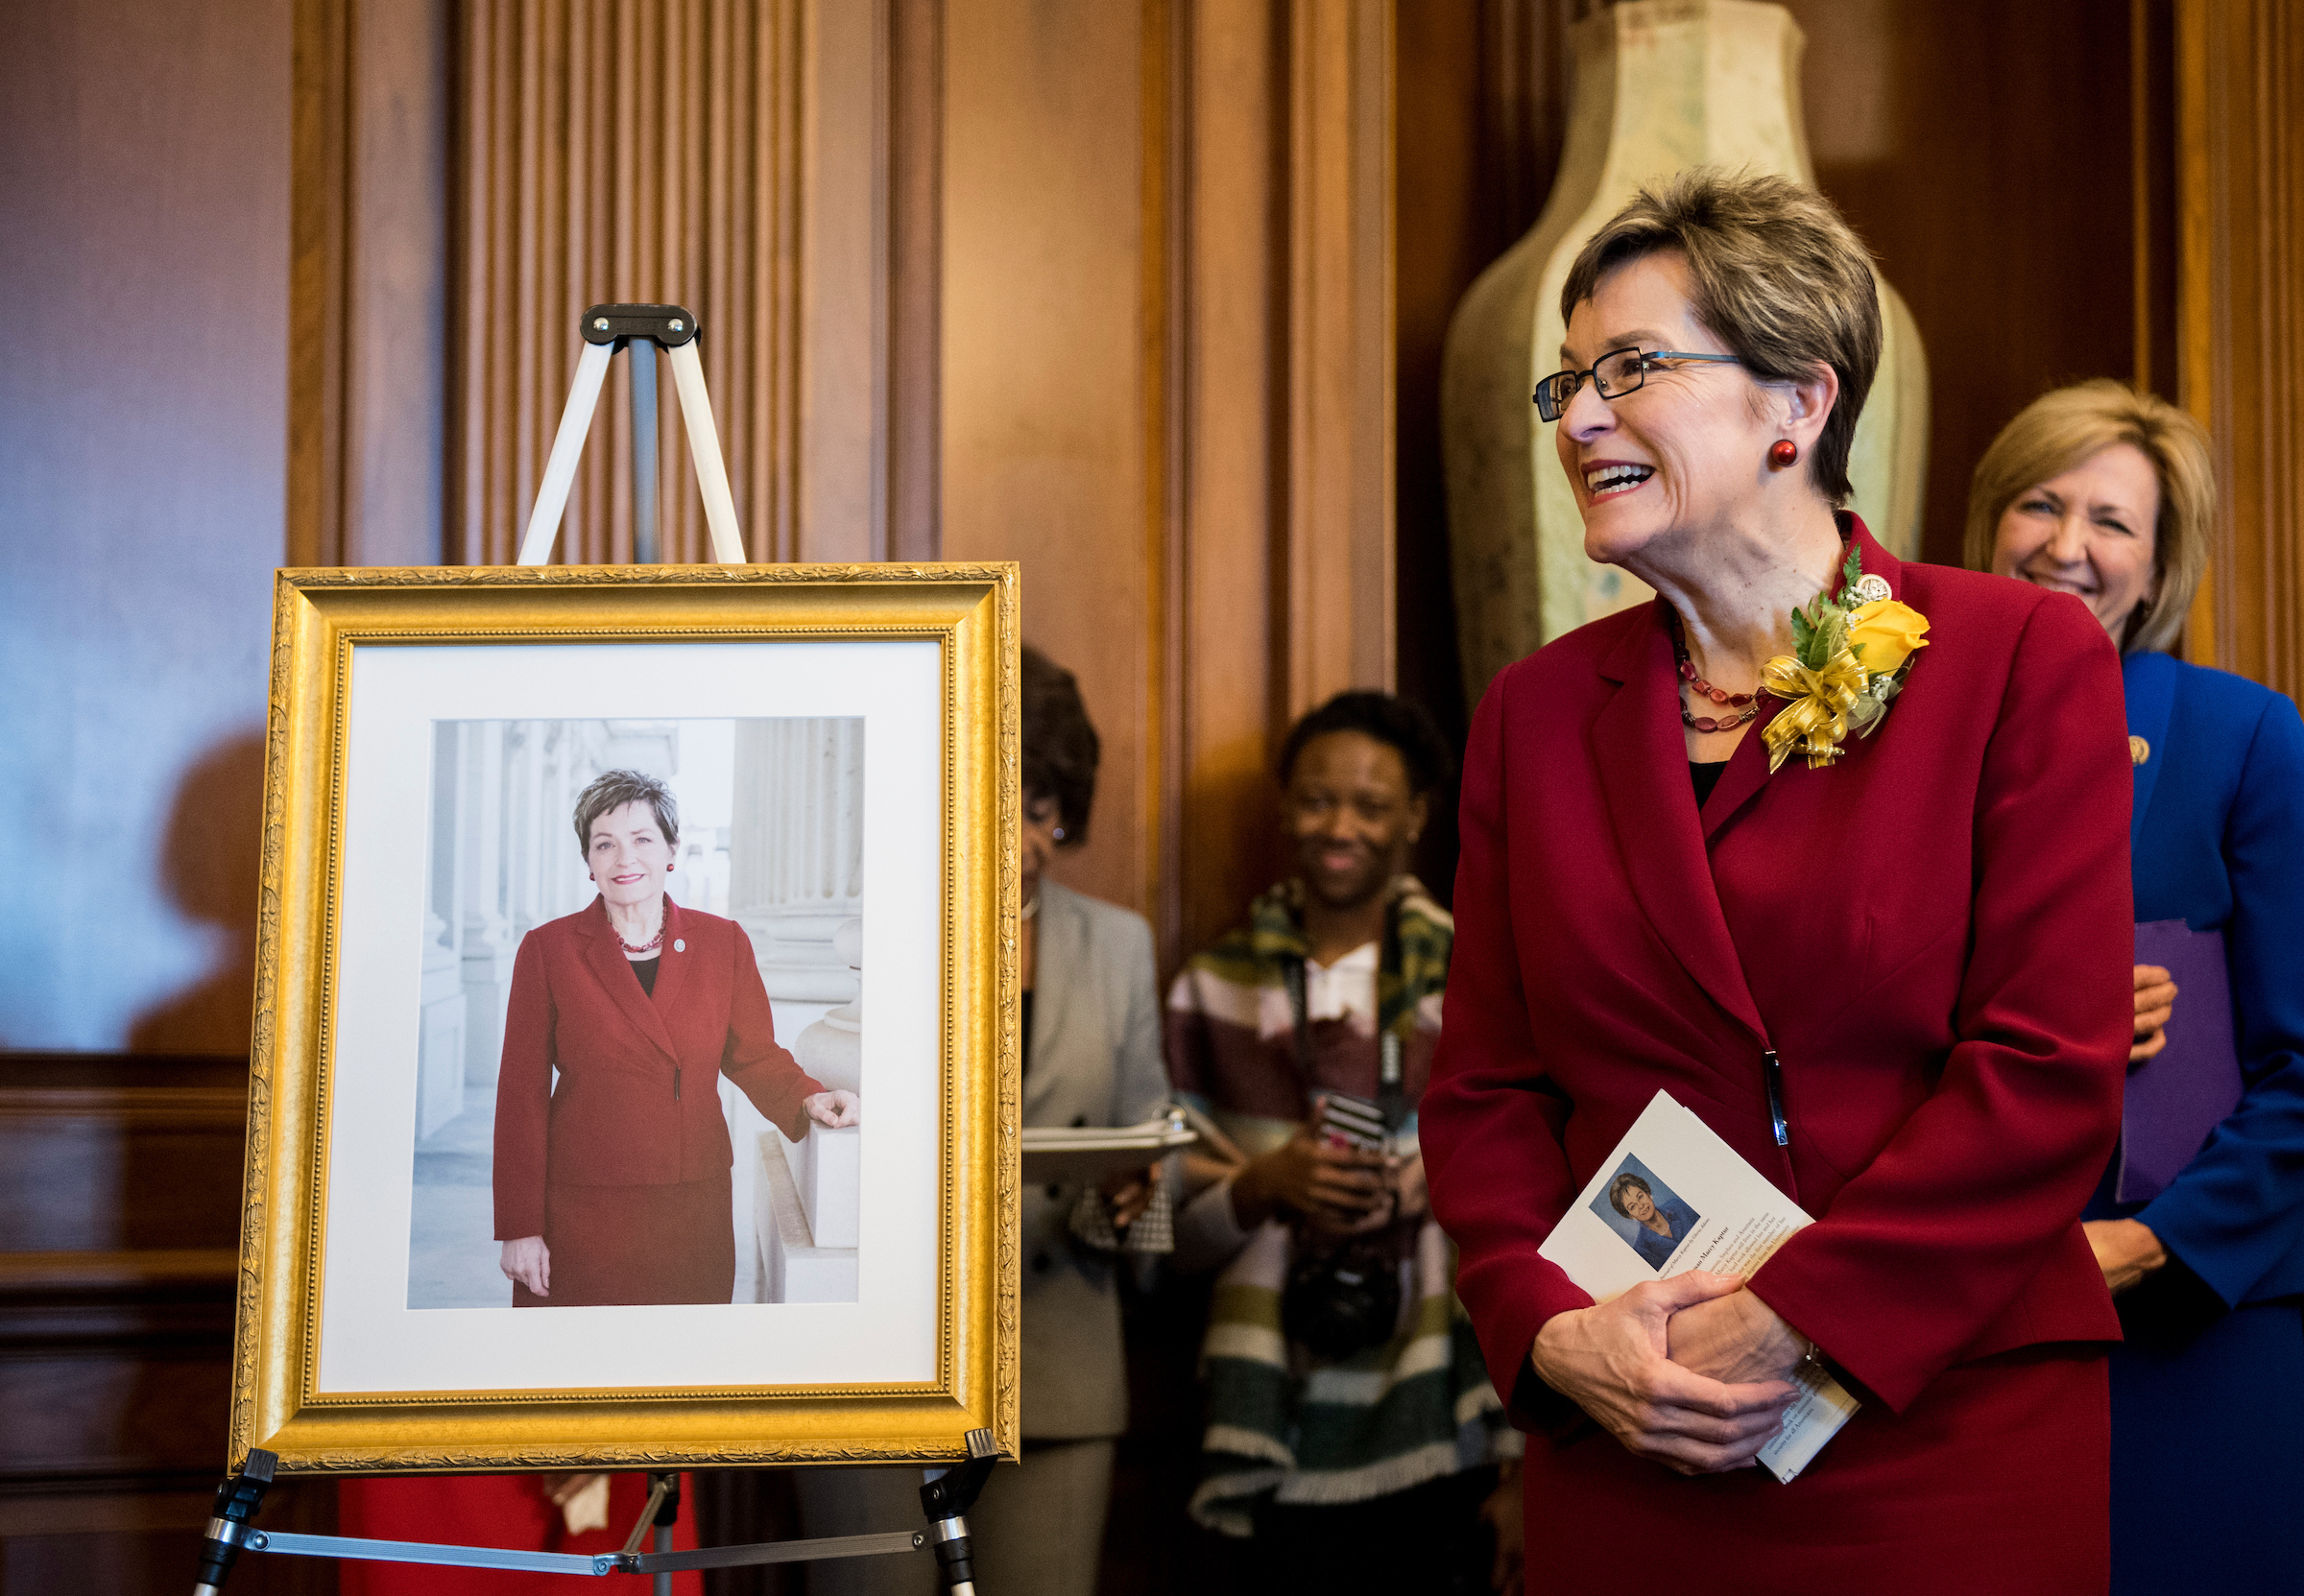 Rep. Marcy Kaptur, D-Ohio, stands next to a picture of herself as House Minority Leader Nancy Pelosi, D-Calif., hosts a reception in Kaptur's honor in the Capitol on Wednesday, March 14, 2018. The reception was held to honor Rep. Kaptur's passing the milestone as the longest-serving woman in House history. She will be breaking the record currently held by Rep. Edith Nourse Rogers, R-Mass., on Sunday, March 18. (Photo By Bill Clark/CQ Roll Call)